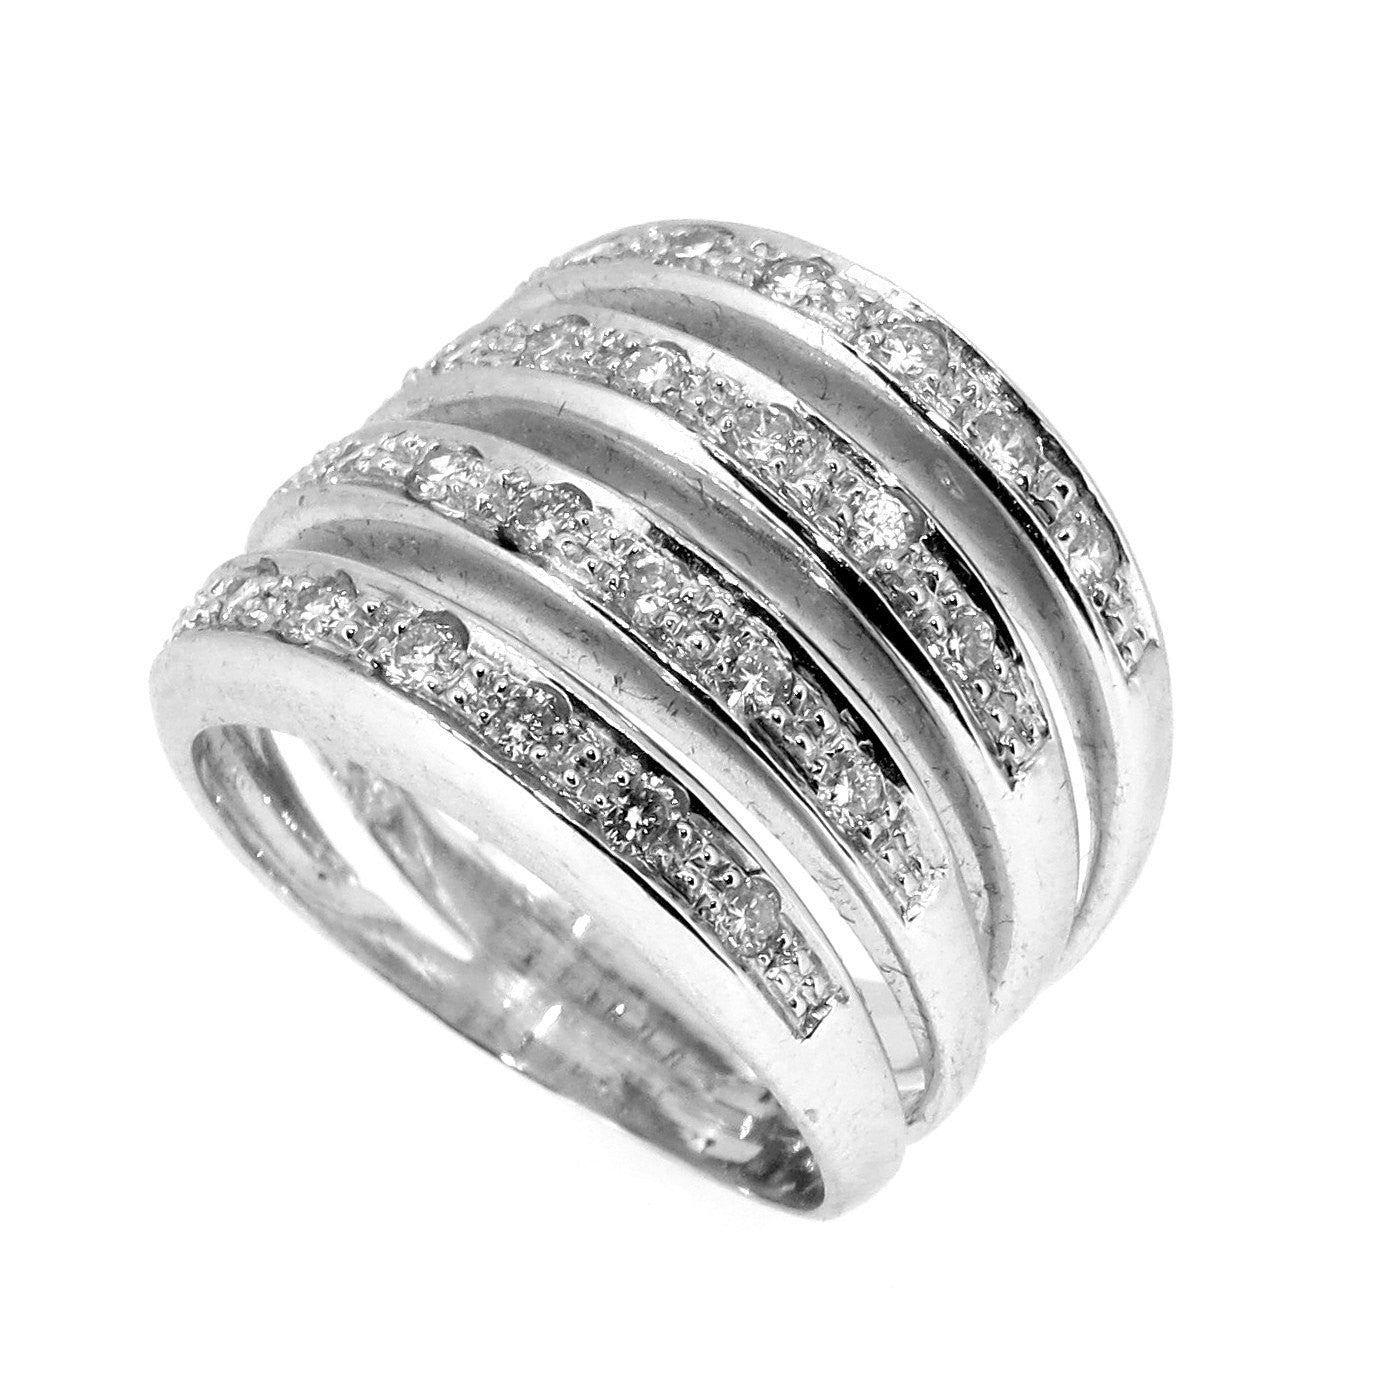 Four-Band Diamond Cocktail Ring/Wedding Band